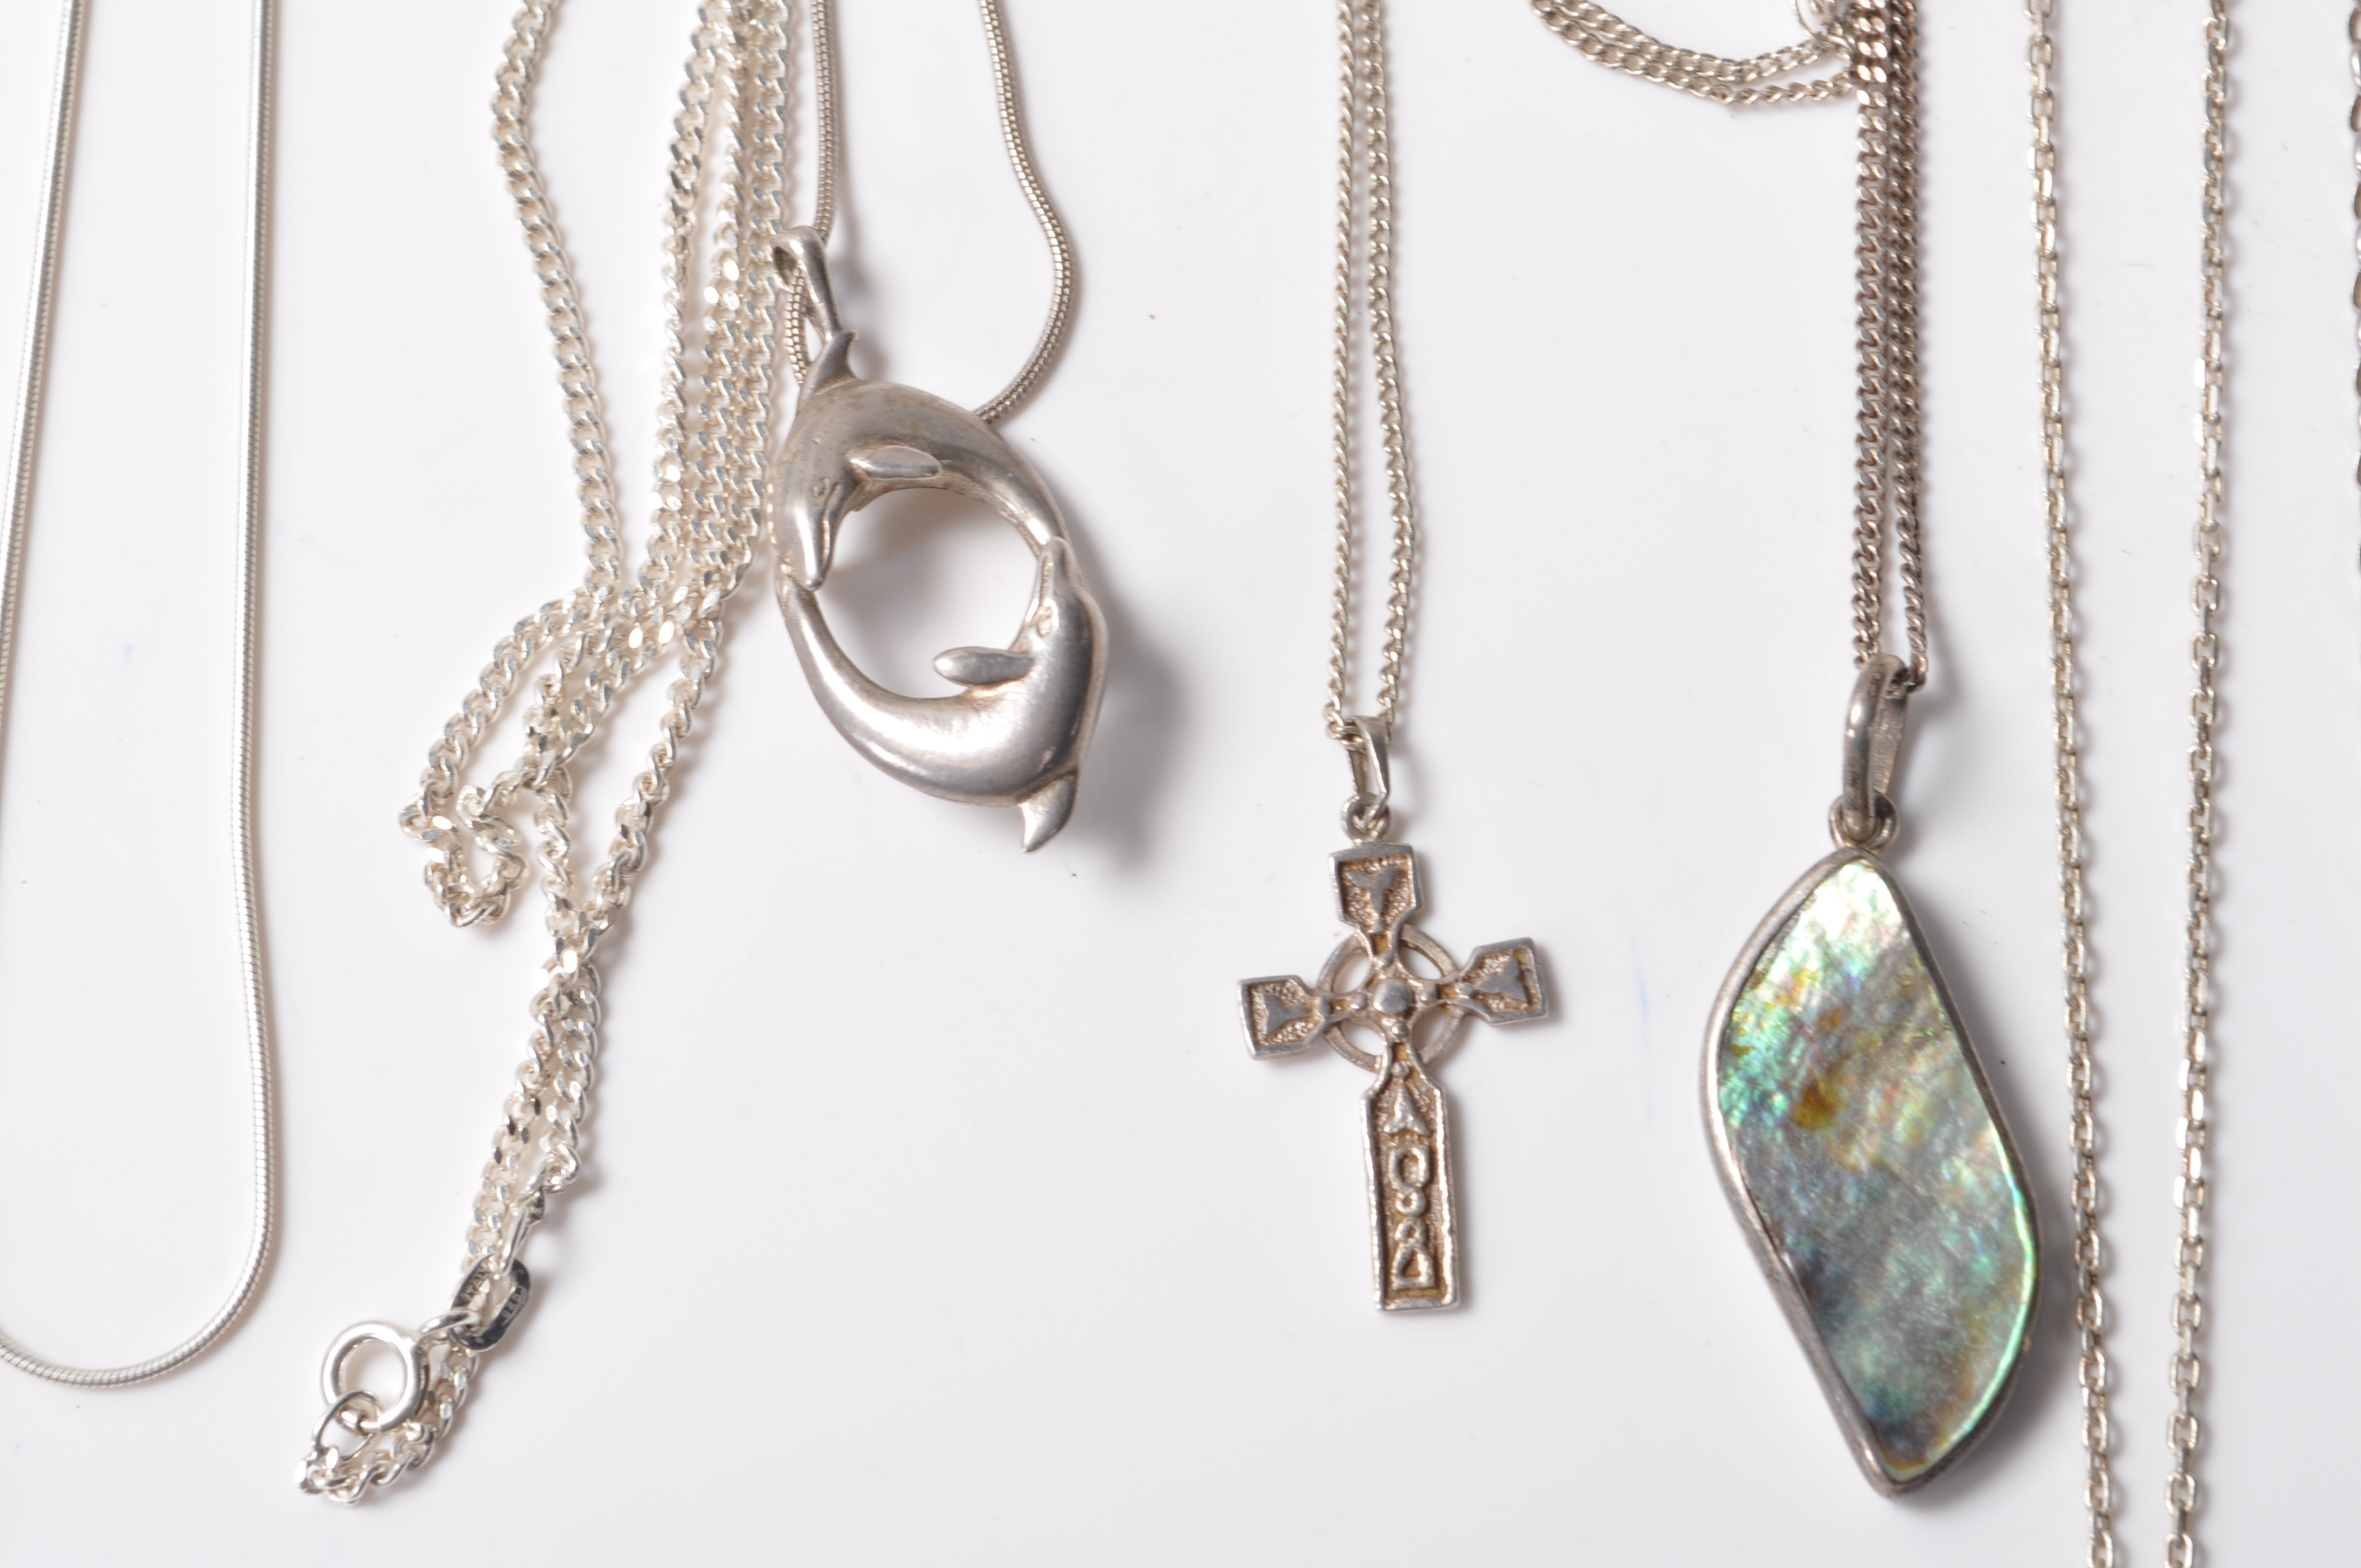 COLLECTION OF STAMPED 925 SILVER NECKLACES AND PENDANTS. - Image 3 of 12